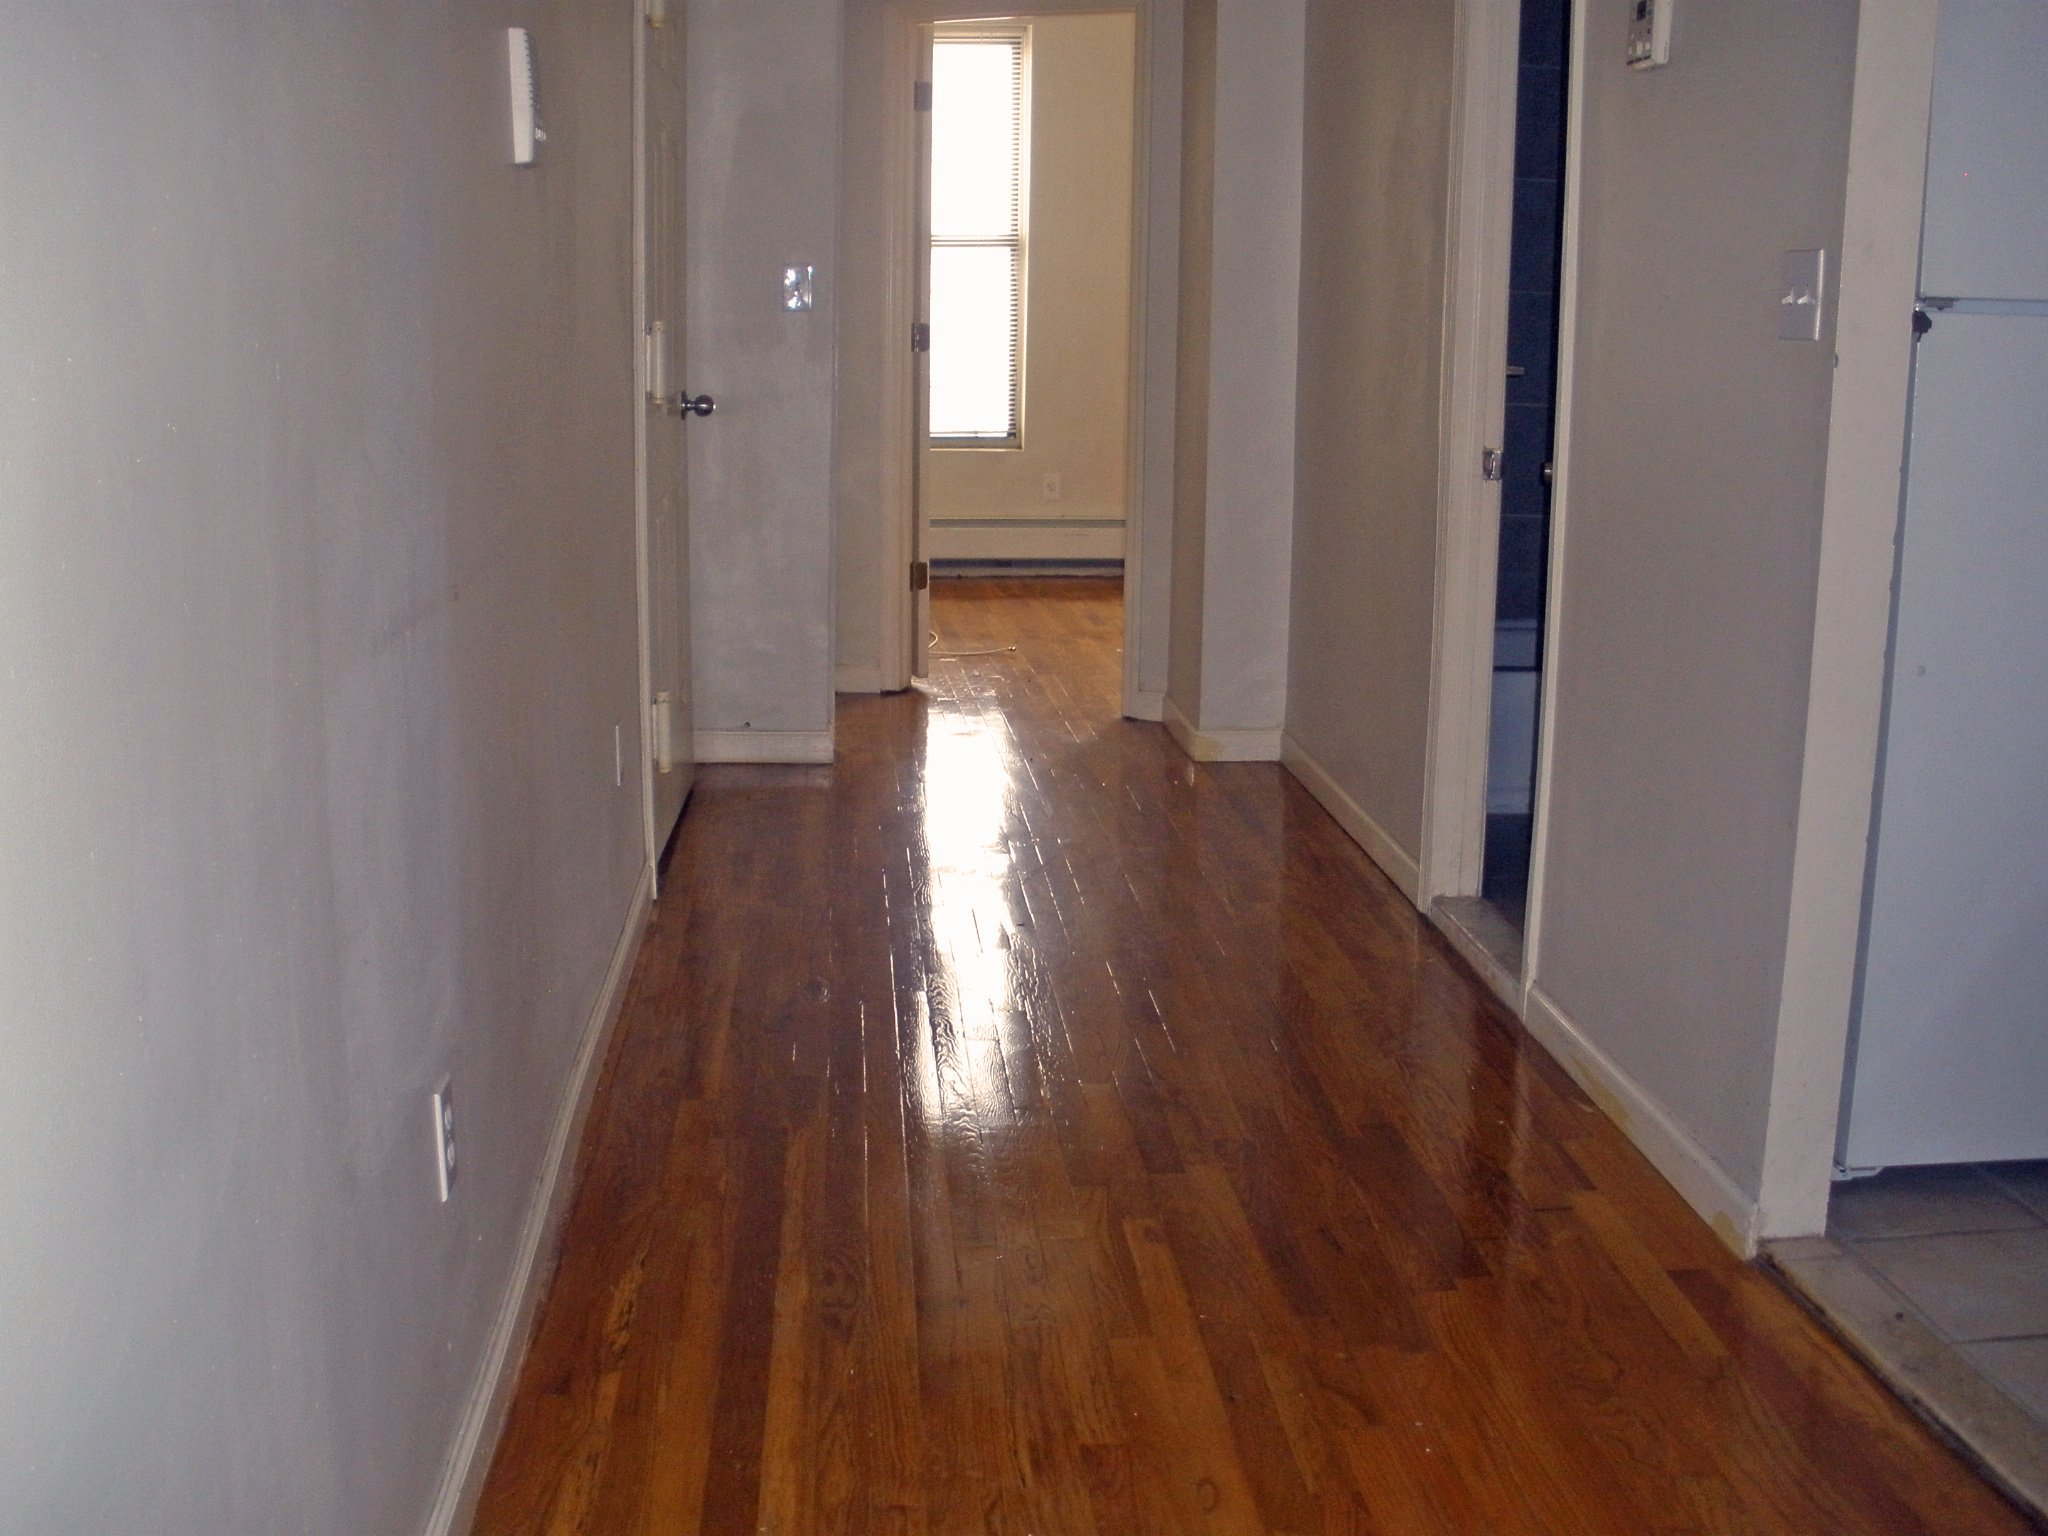 Bedford stuyvesant 2 bedroom apartment for rent brooklyn crg3110 for Two bedroom apt in bed stuy area